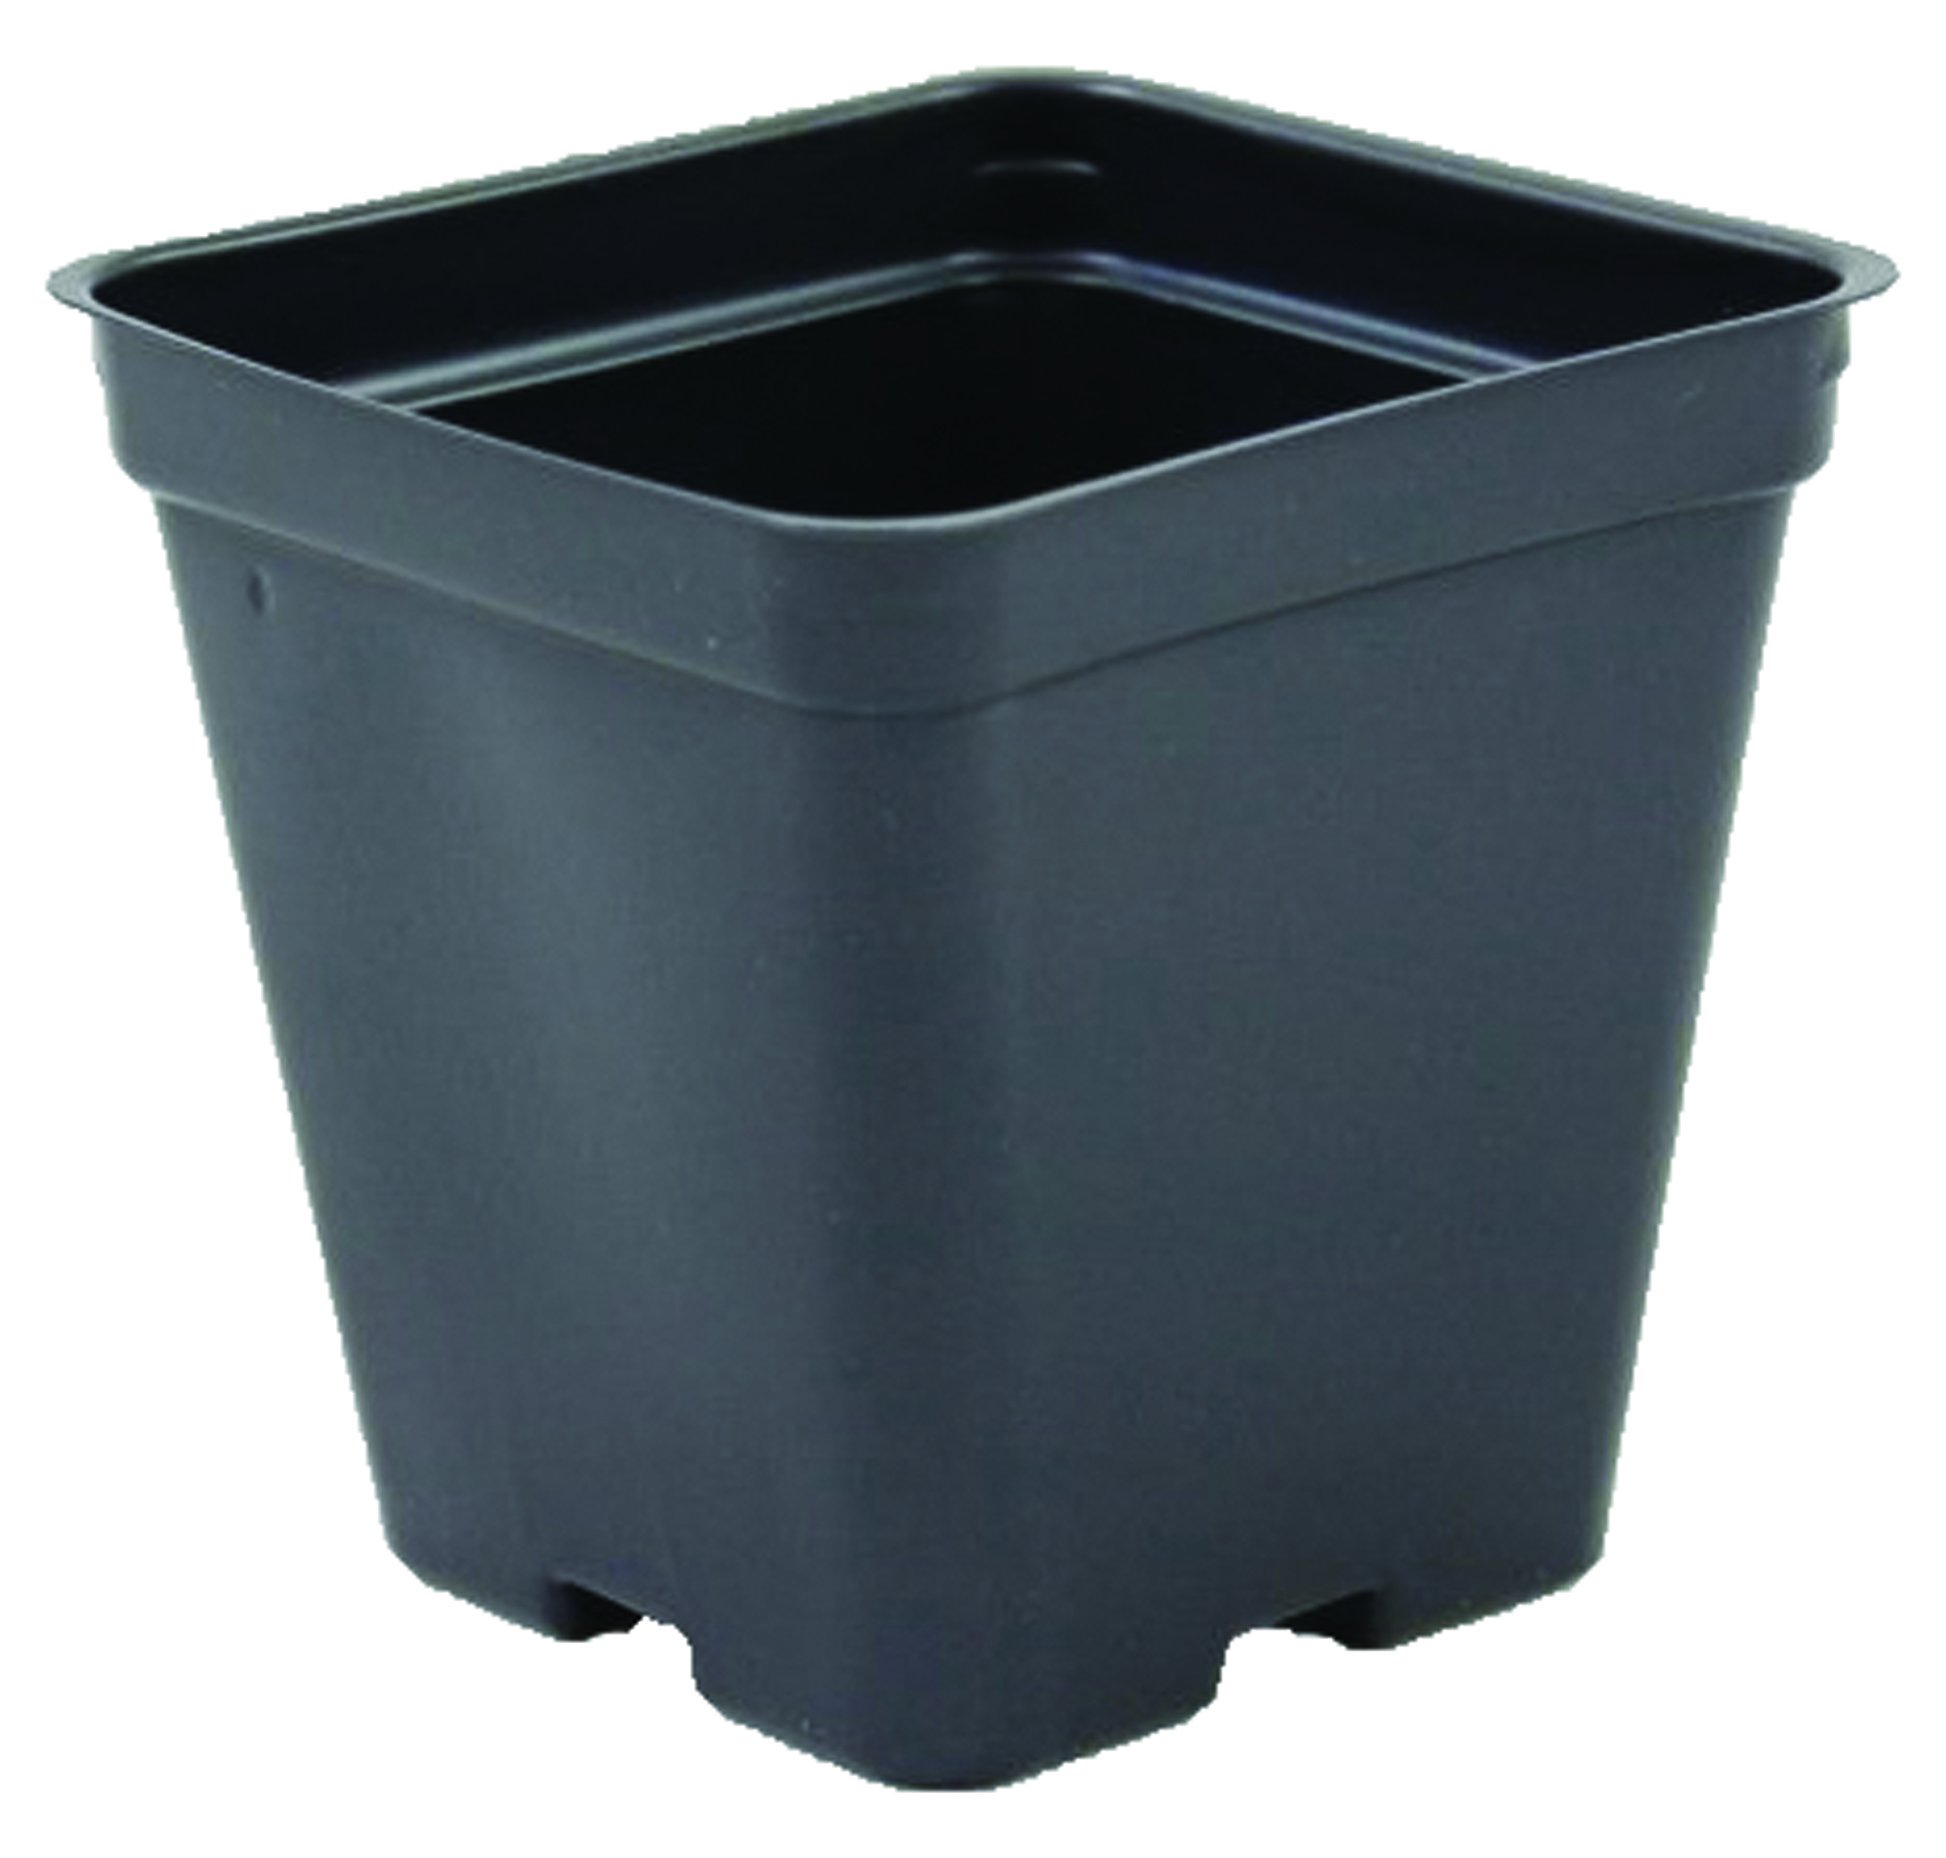 Square Greenhouse Pots 3.5 inch x 3.5 inch- Black - Plastic - Deep - Case of 450 by Growers Solution